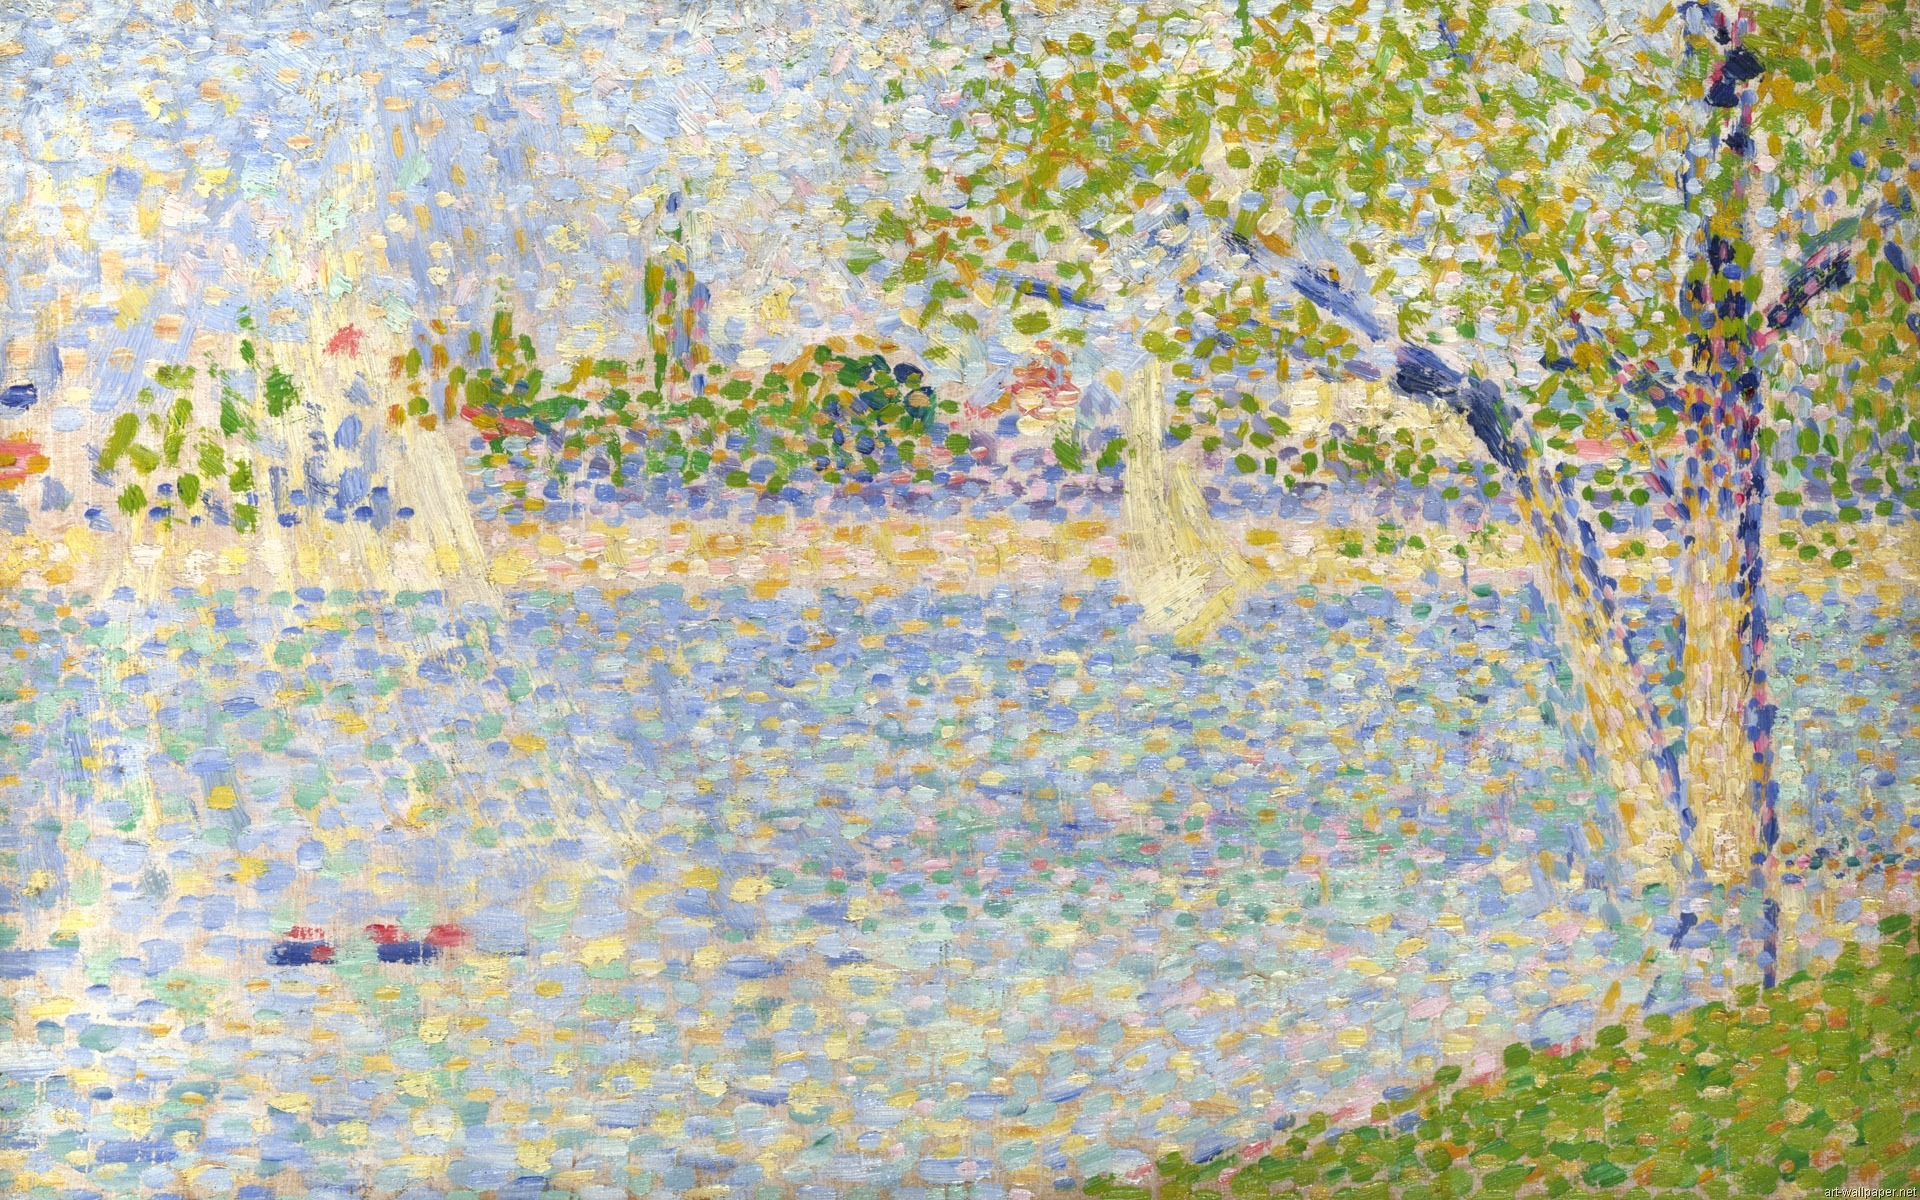 Pin Wallpapers Impressionism Painting Wallpaper 08jpg 1920x1200 on 1920x1200